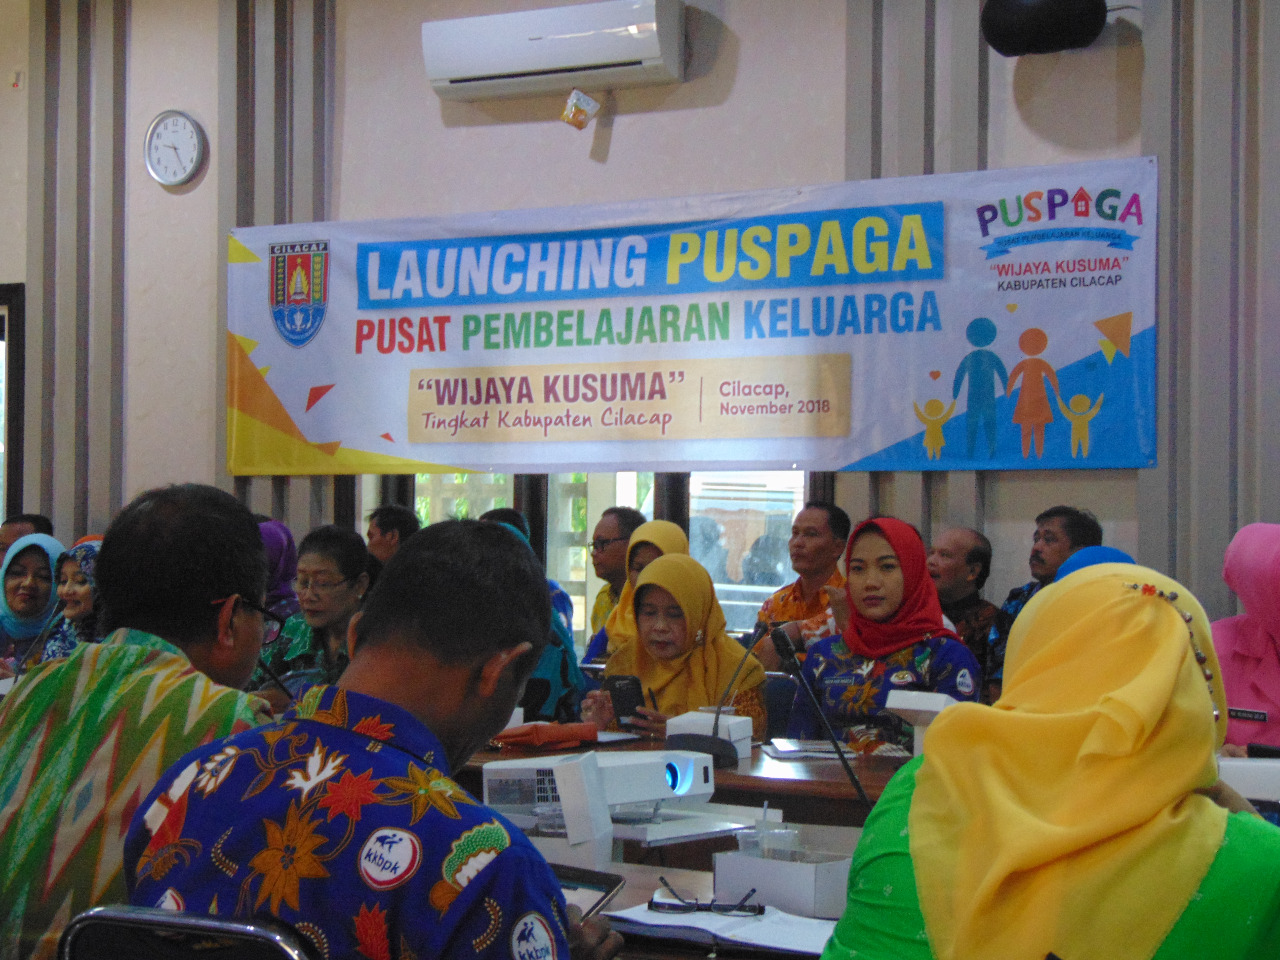 Launching PUSPAGA